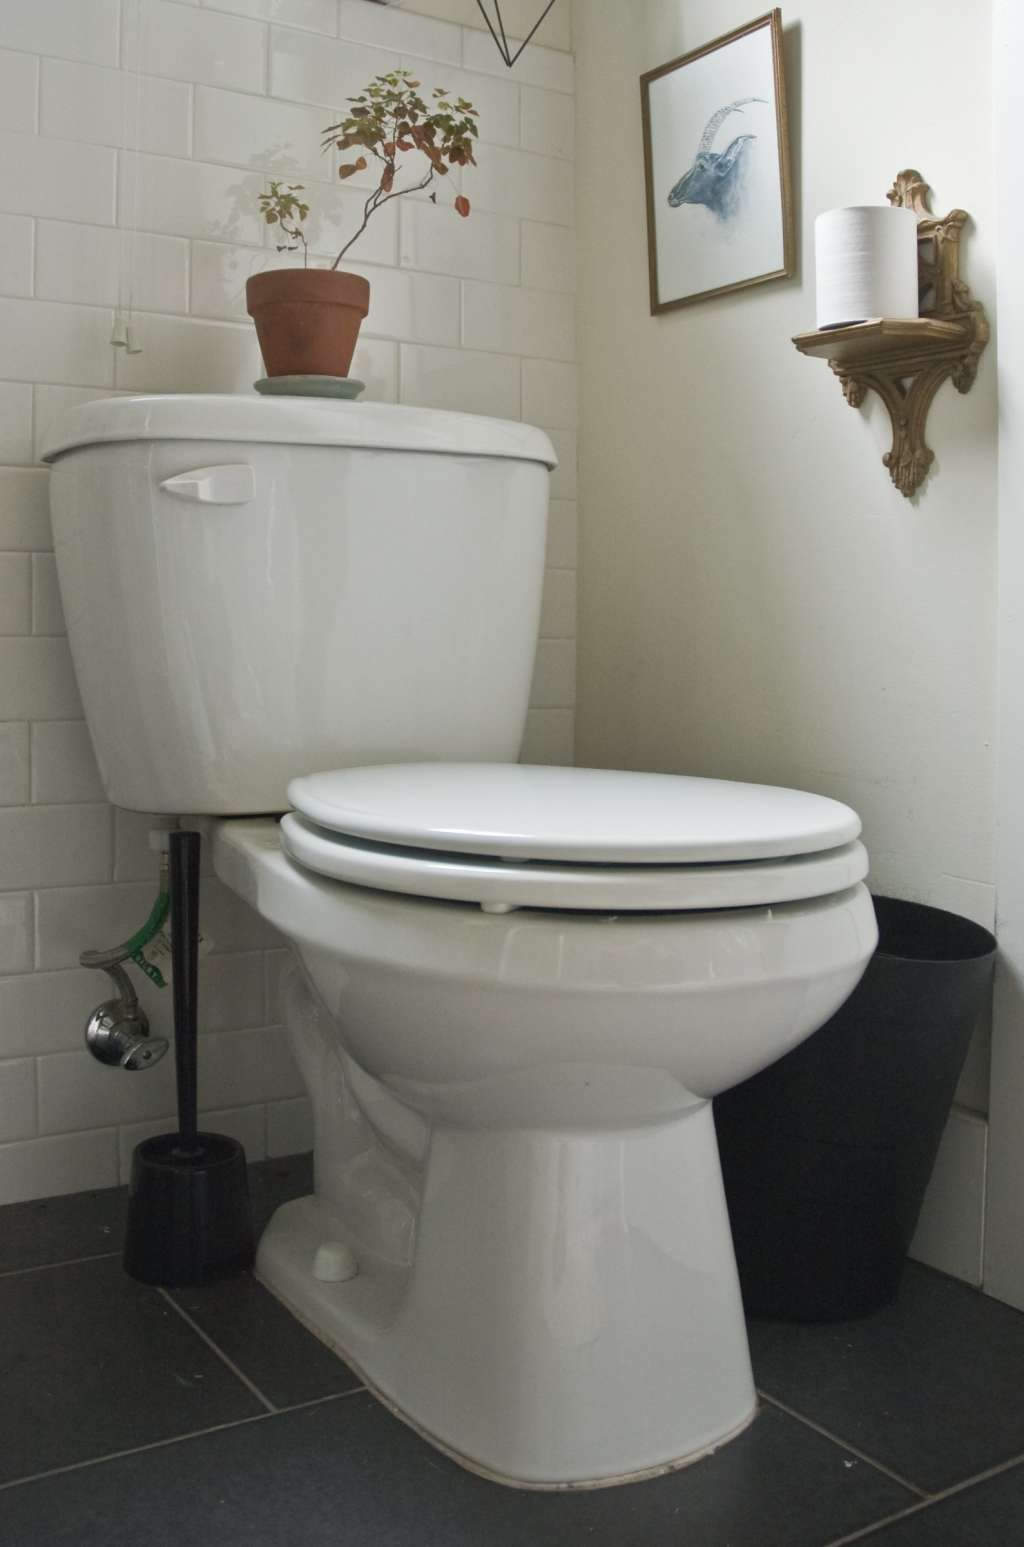 how to fix a running toilet common causes easy diy fixes apartment therapy. Black Bedroom Furniture Sets. Home Design Ideas